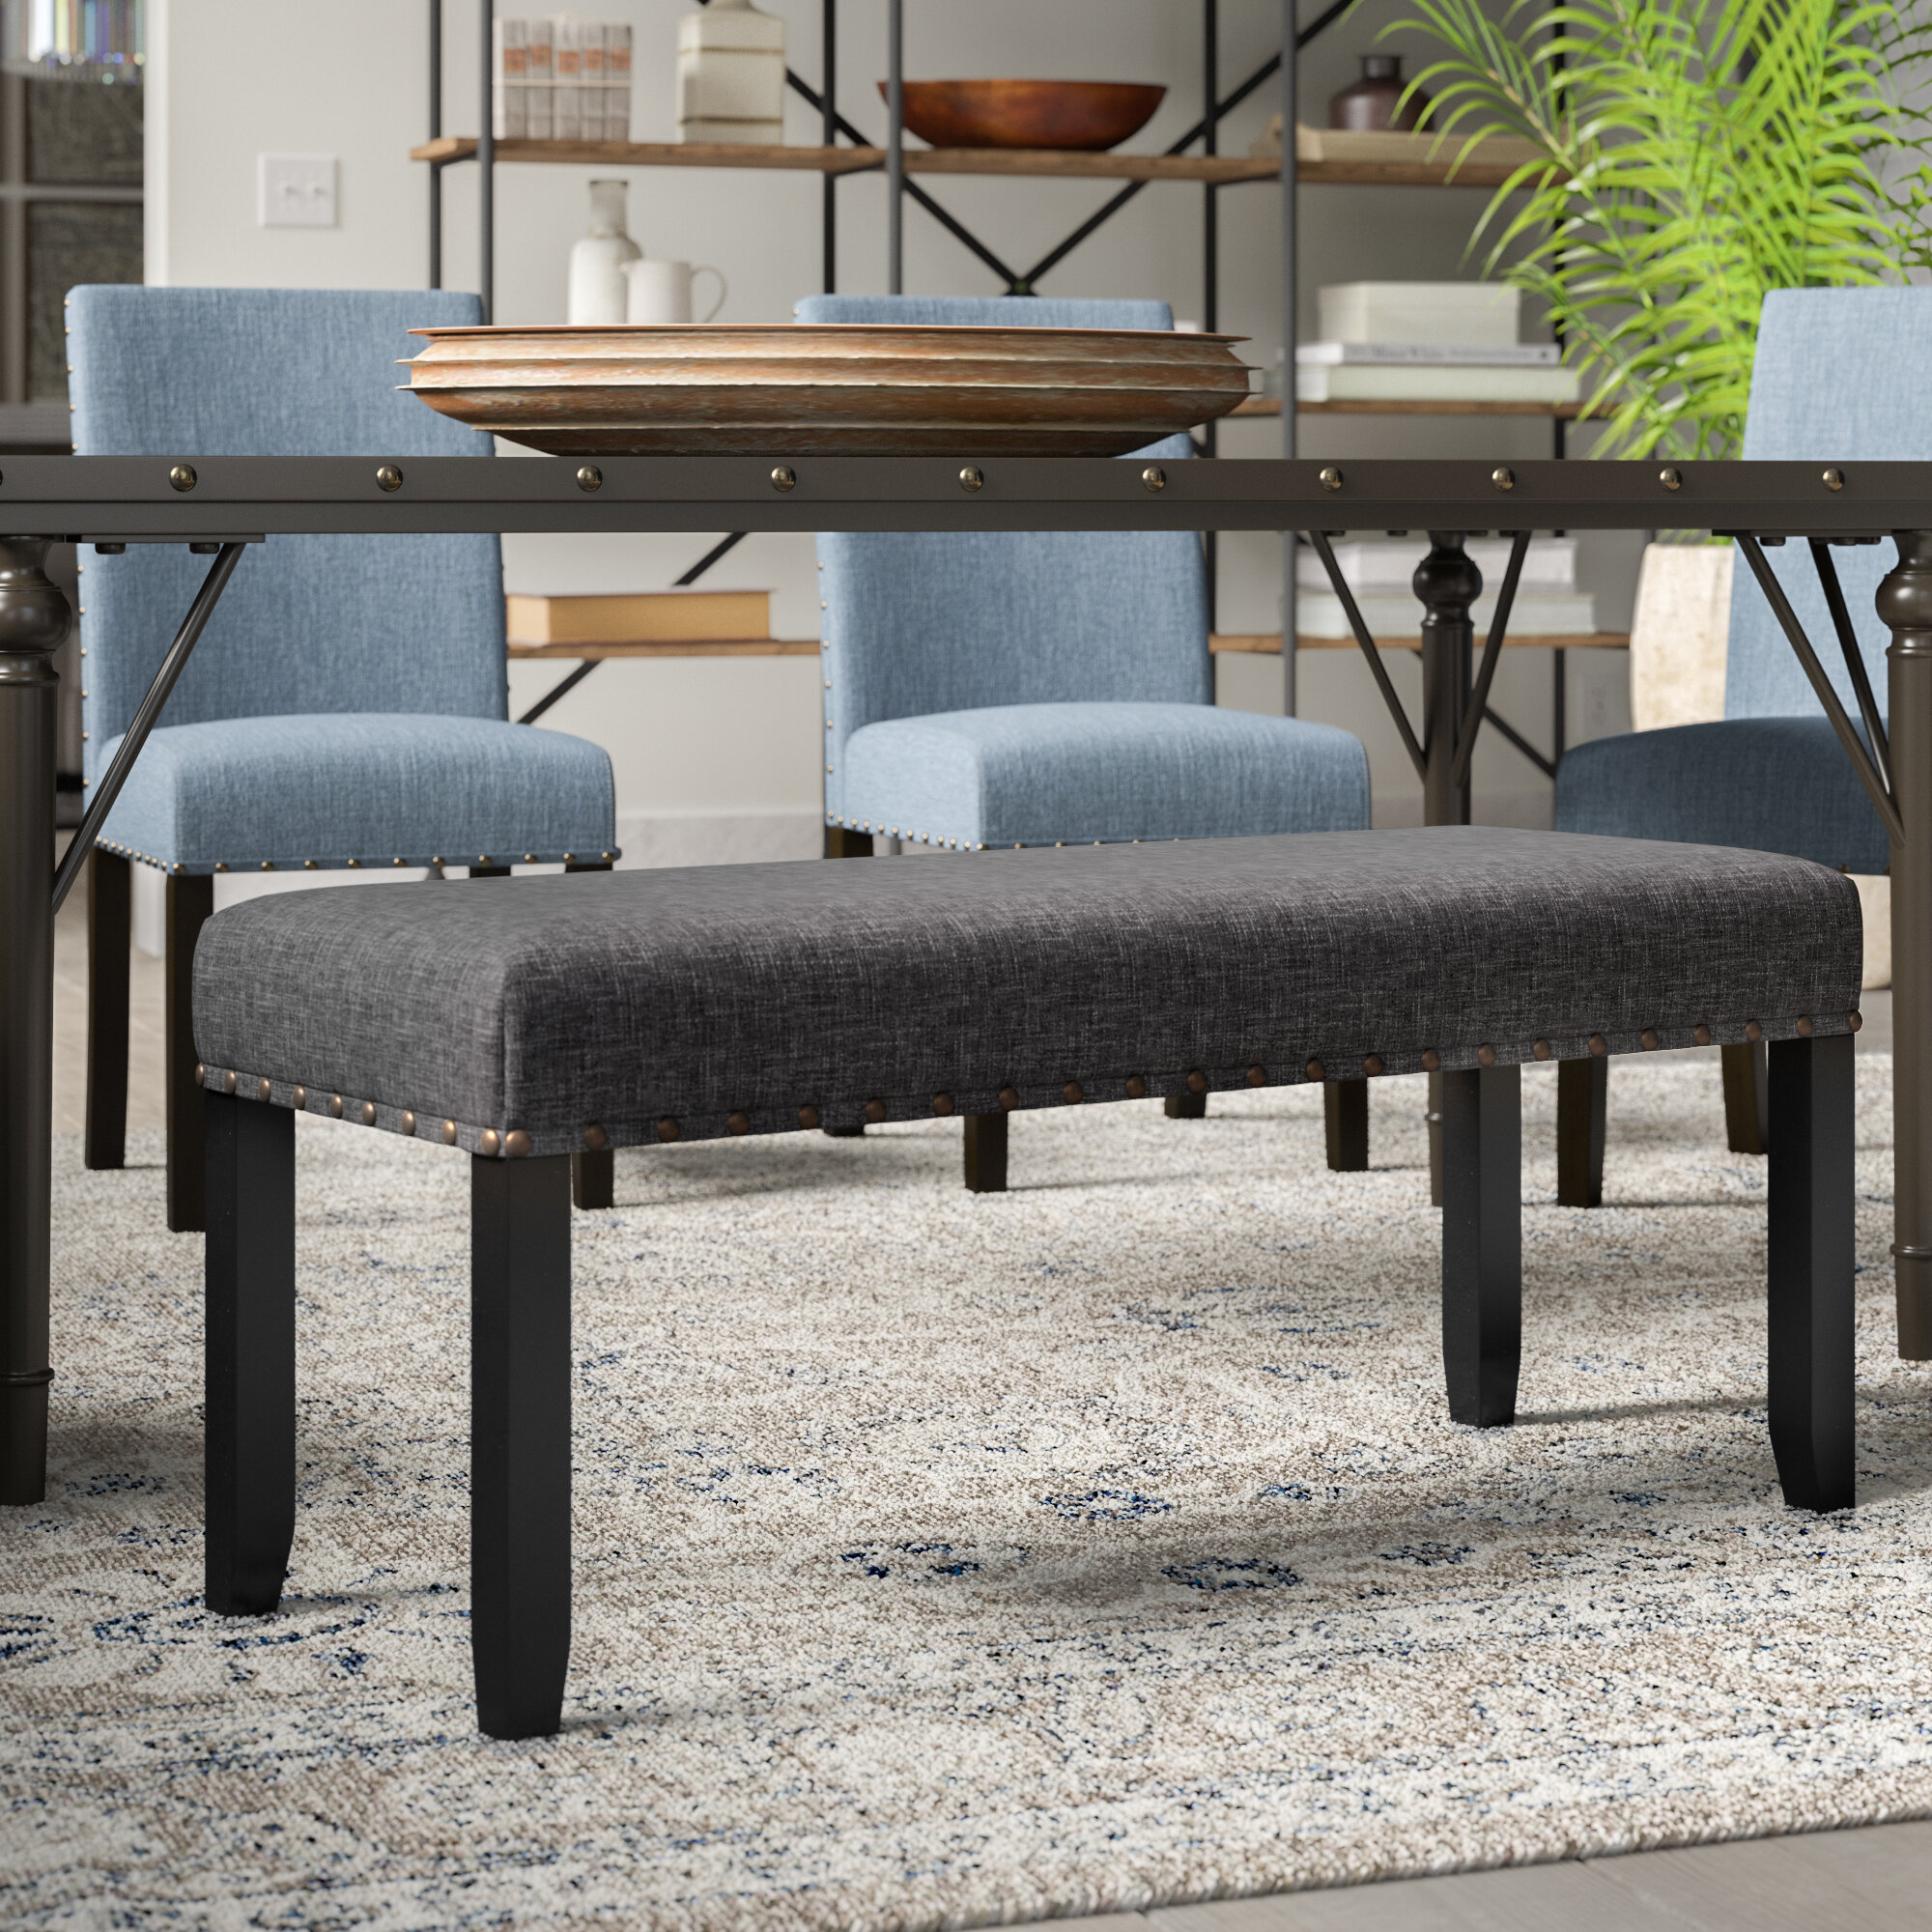 Kitchen Dining Benches Up To 55 Off Through 02 16 Wayfair